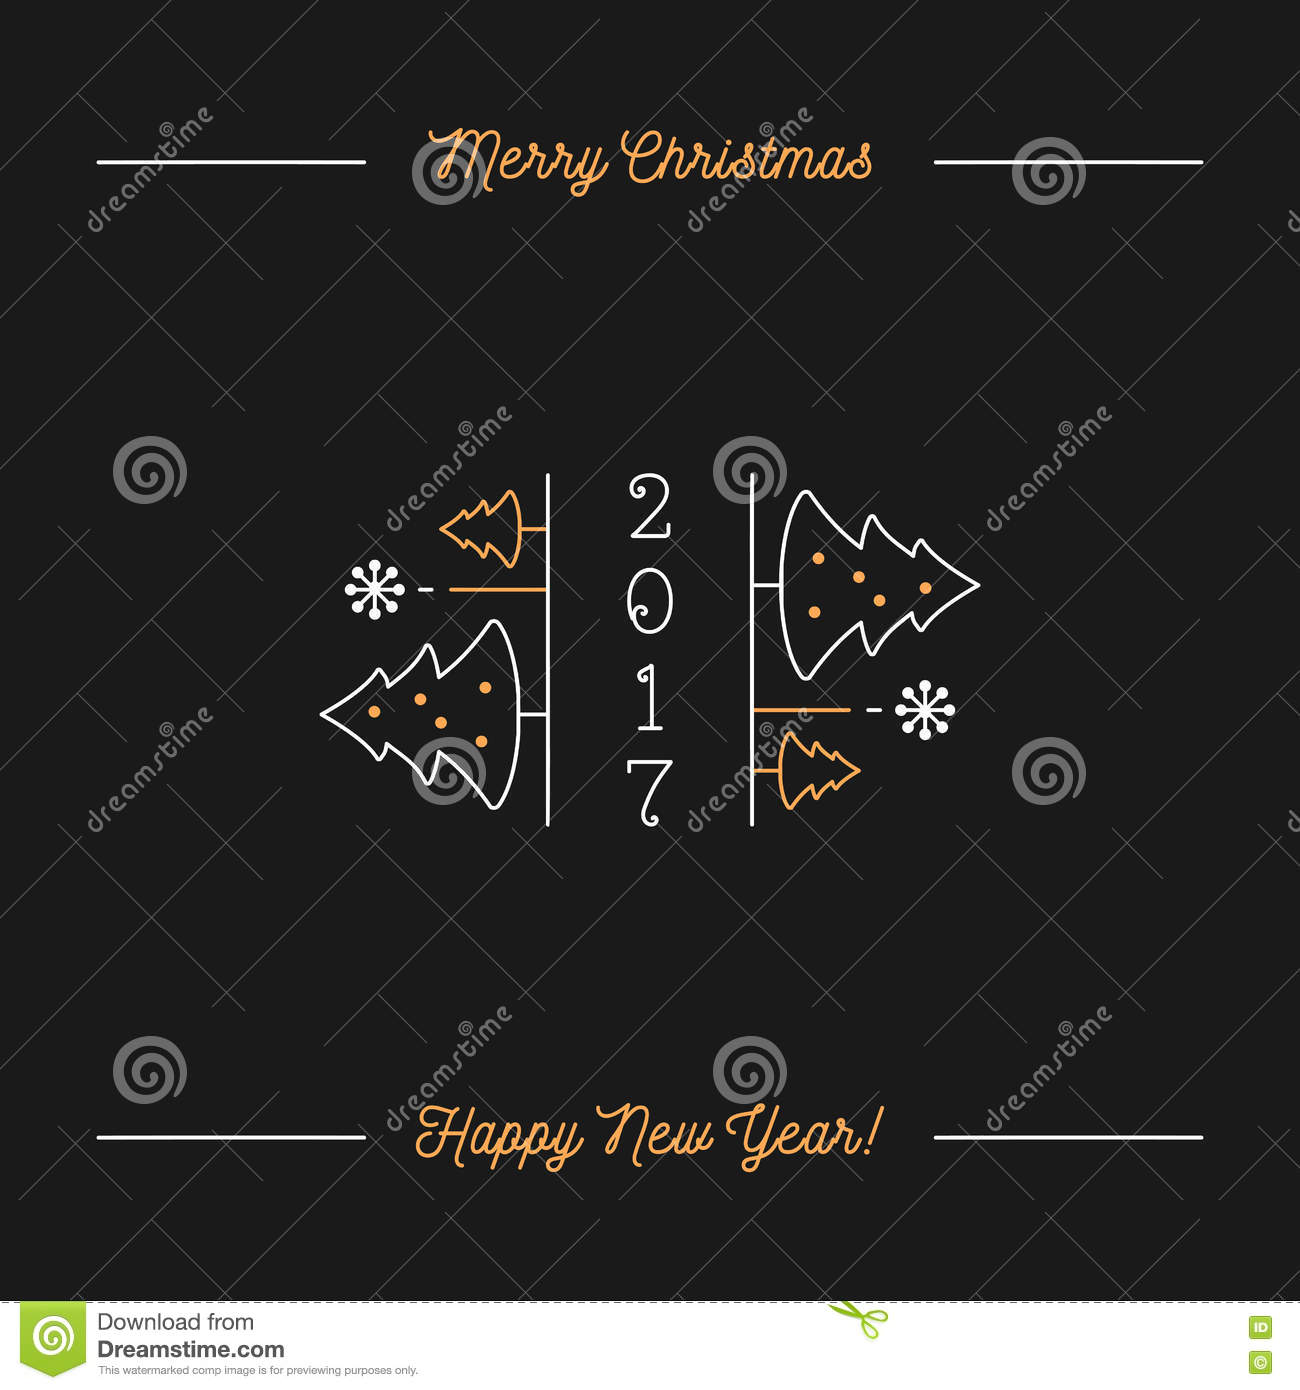 Merry christmas and happy new year minimalistic holiday greeting merry christmas and happy new year minimalistic holiday greeting card kristyandbryce Gallery